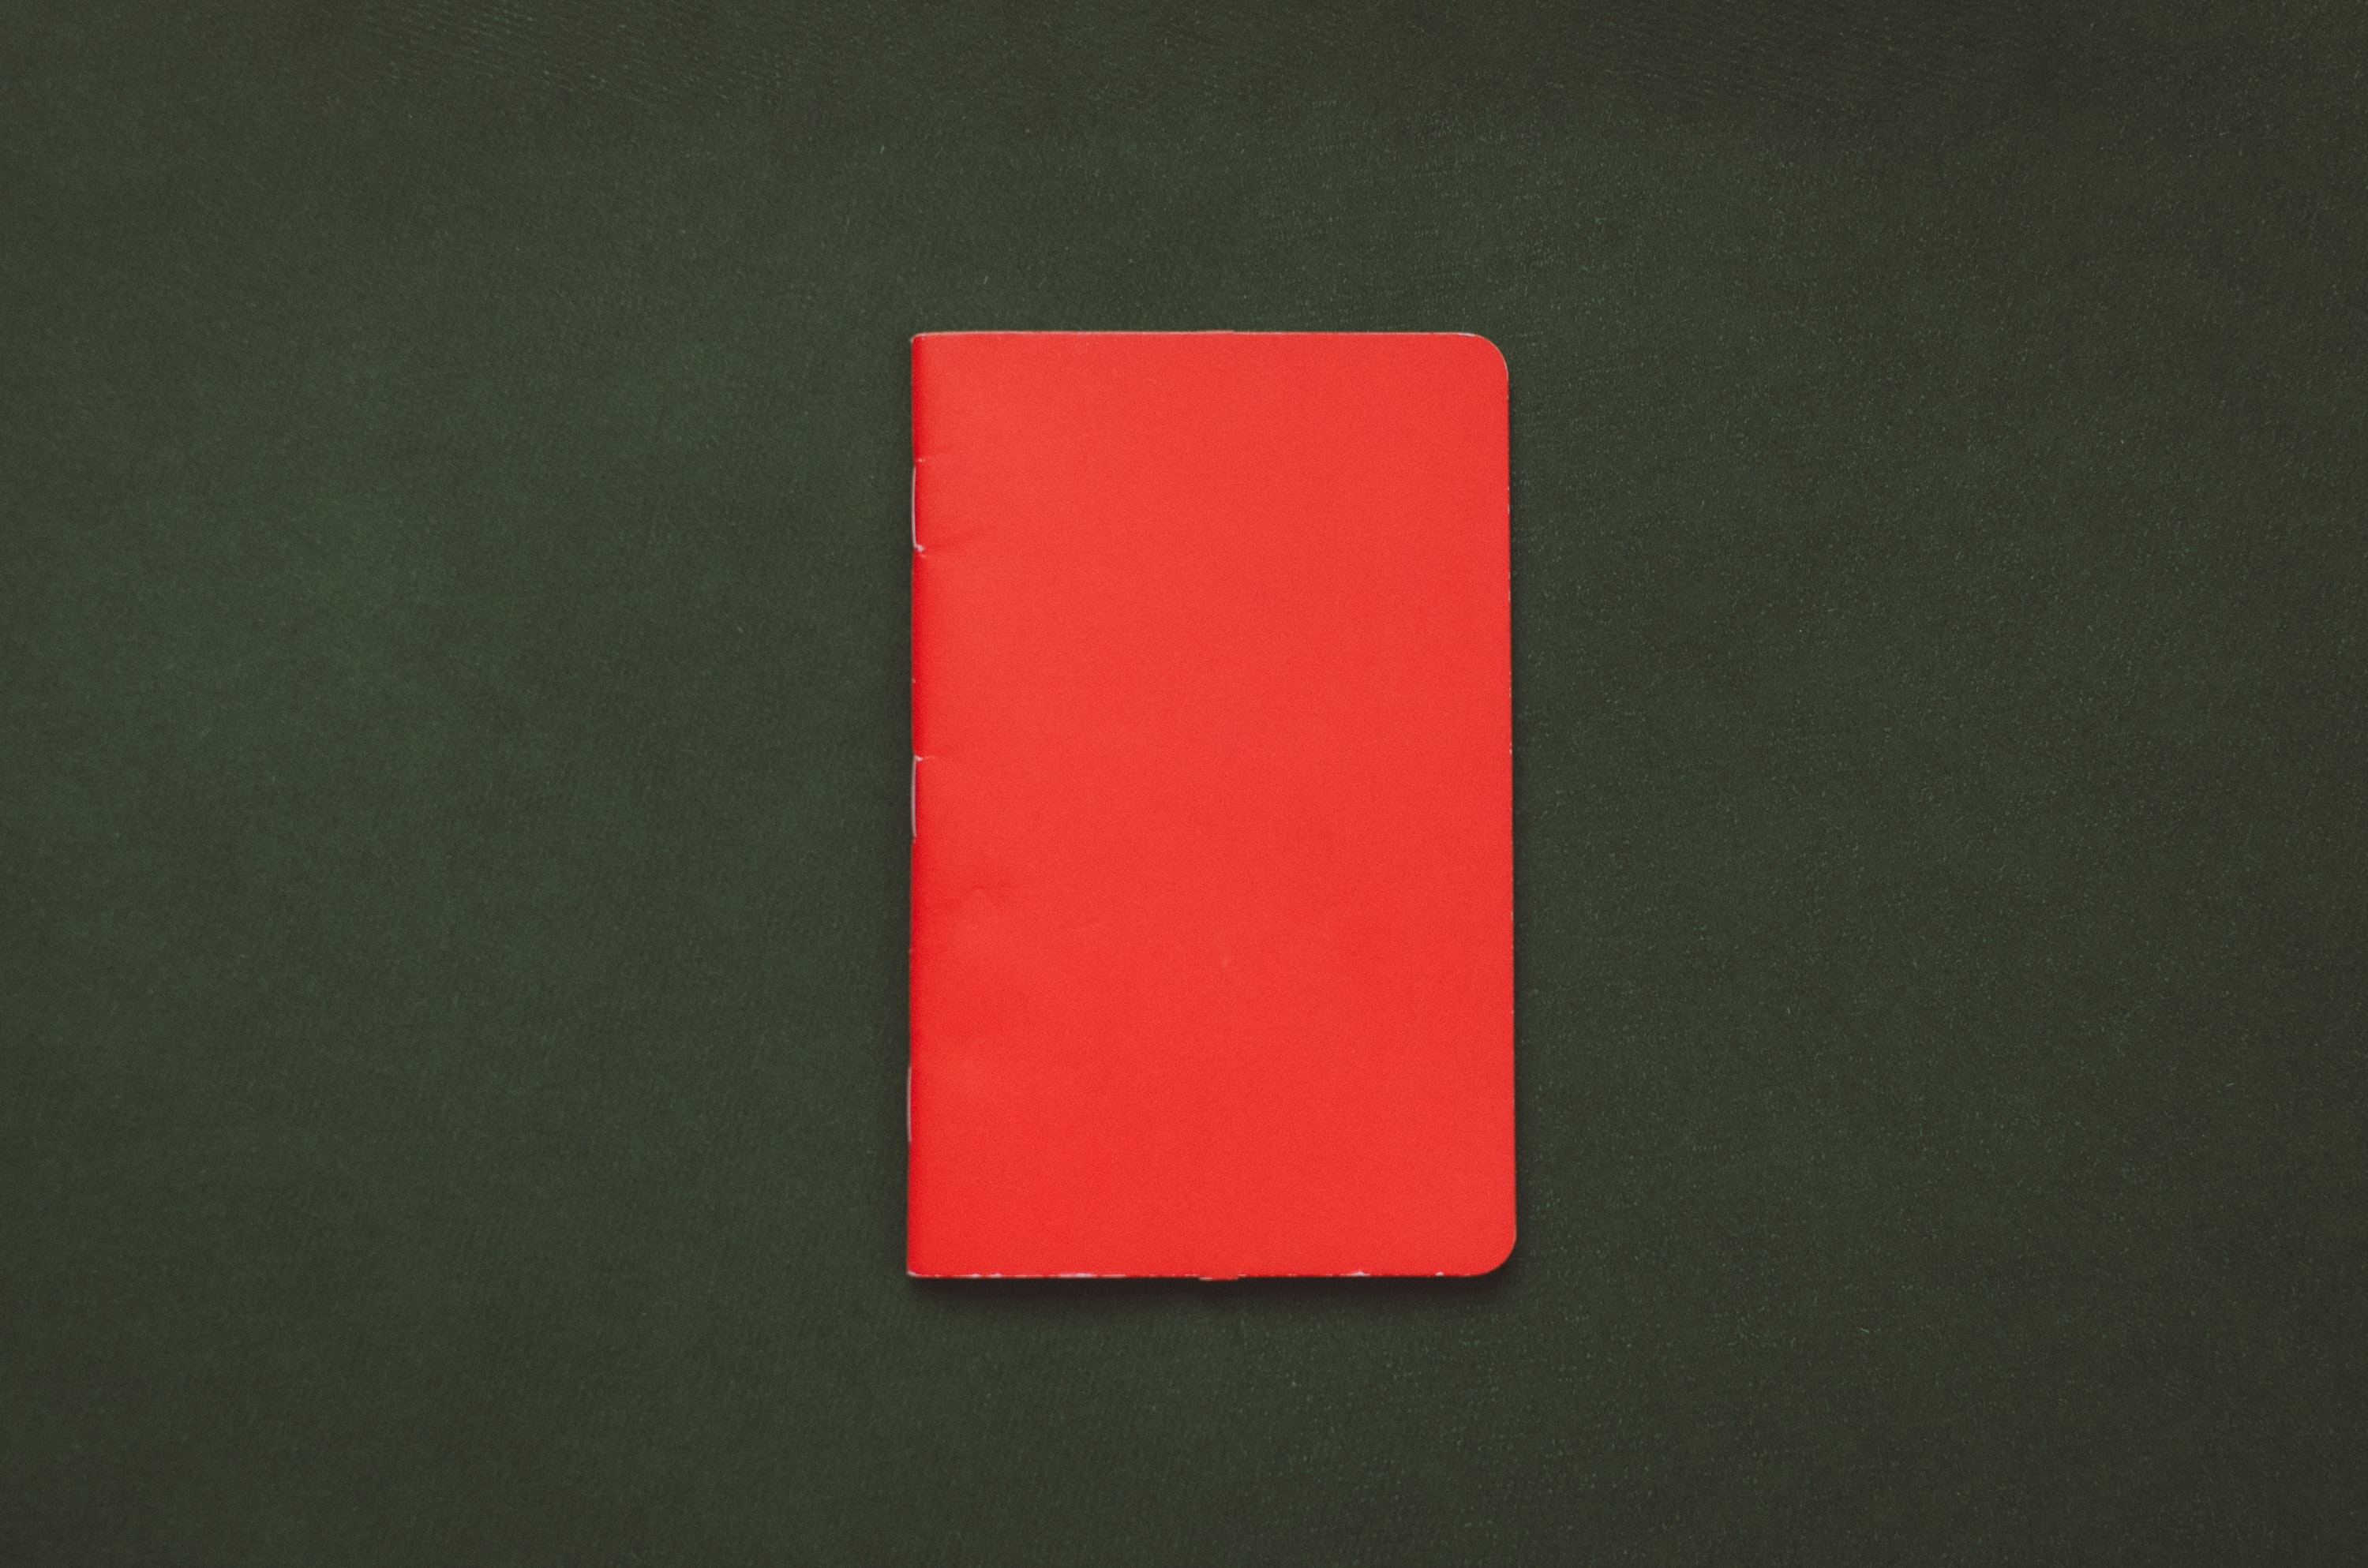 closed red book